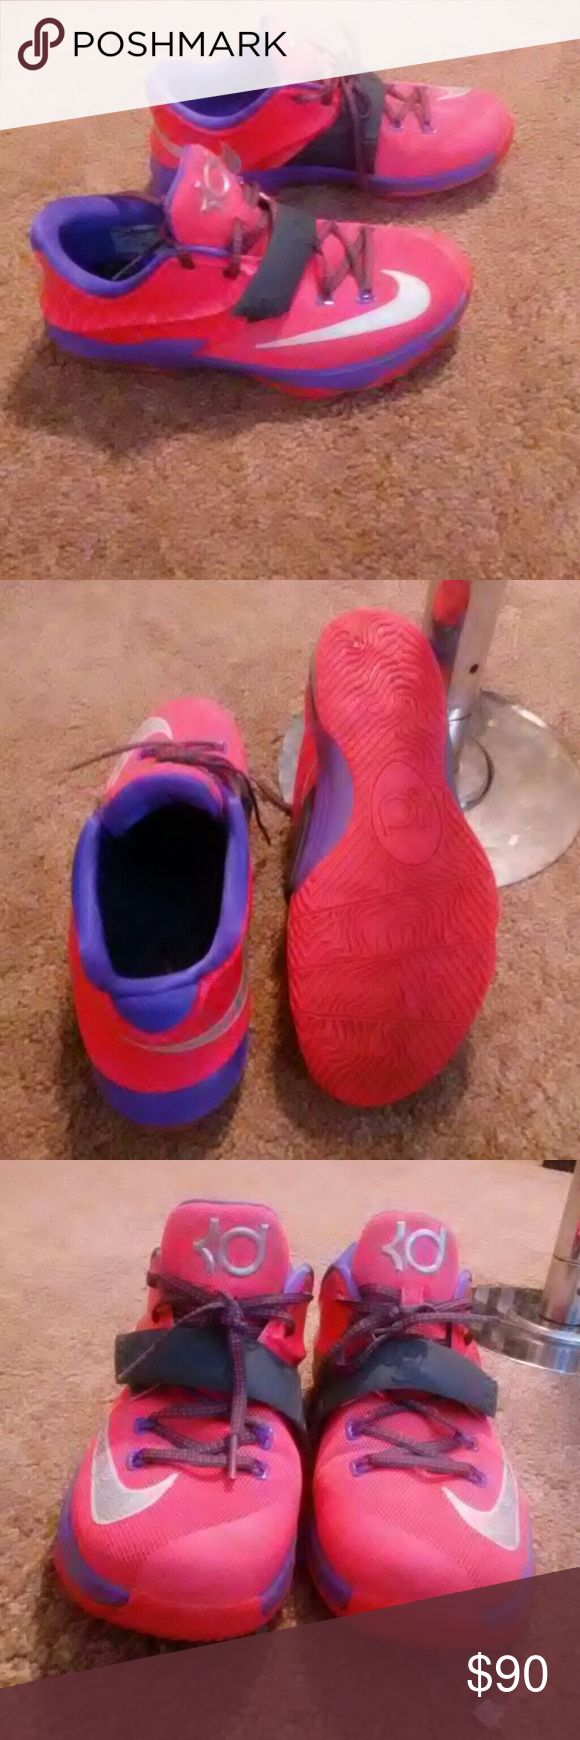 Kevin durant limited edition shoes Bright colors*   worn 3 times. Very comfortable. And low around the ankles... So no ankle support but perfect condition Kevin Durant Shoes Athletic Shoes